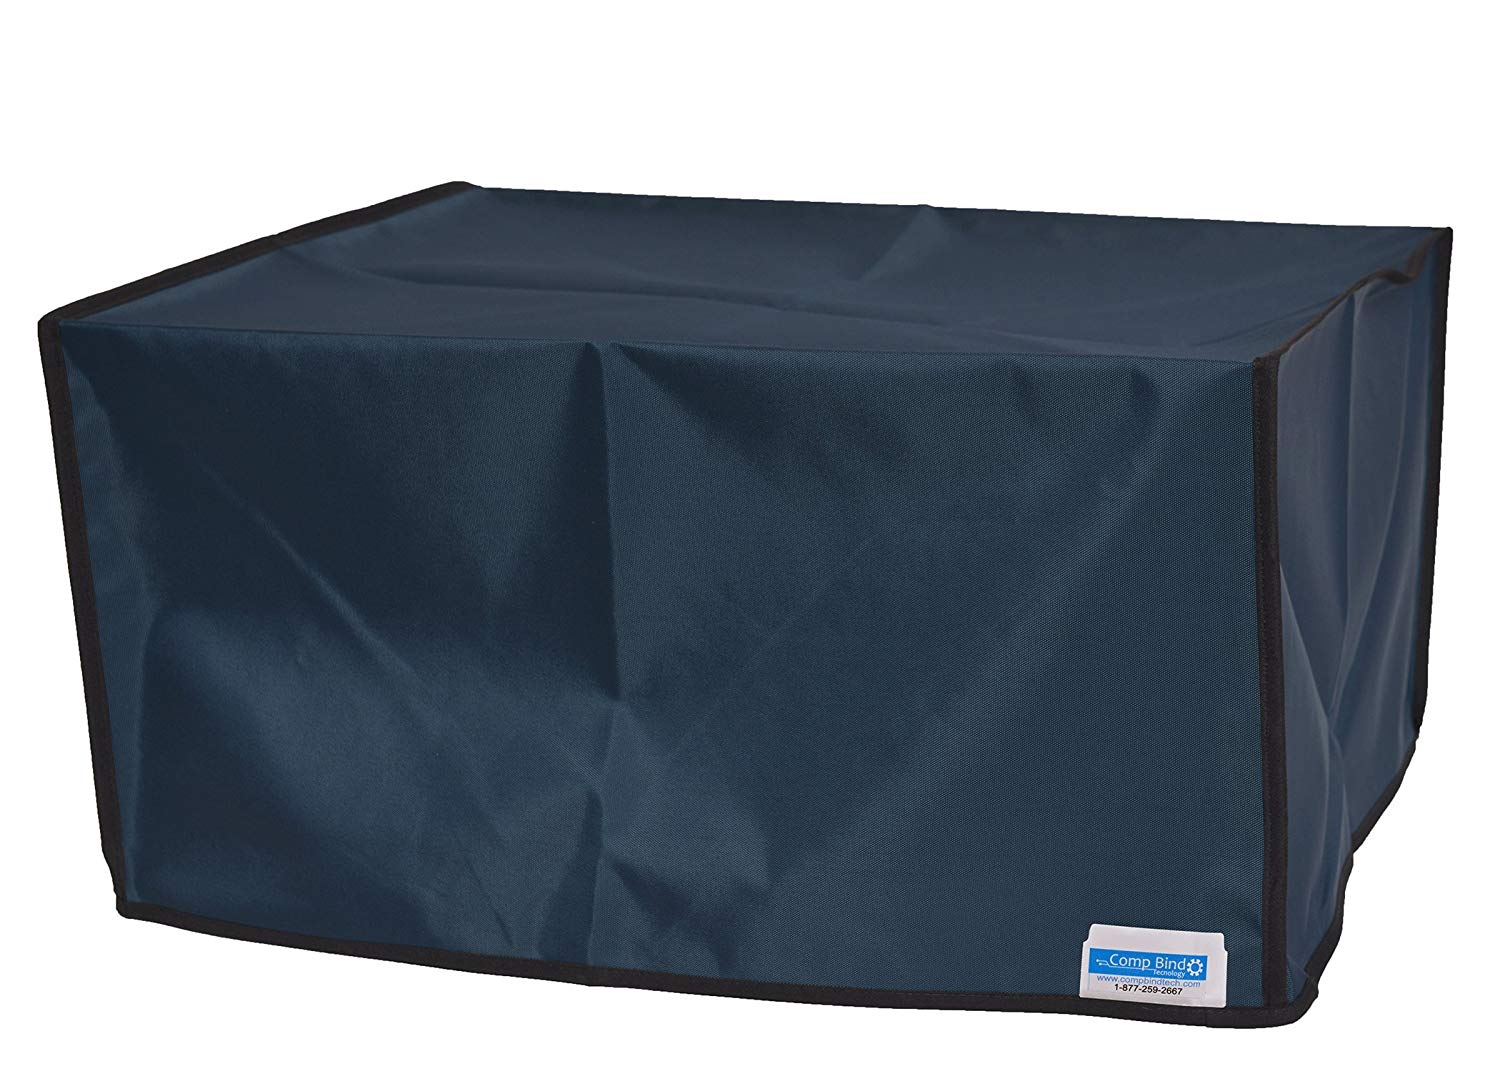 Comp Bind Technology Dust Cover for Epson Stylus Pro 7890 Printer, Petroleum Blue Anti-Static Dust Cover Dimensions - 53.5''W x 26.3''D x 48'H